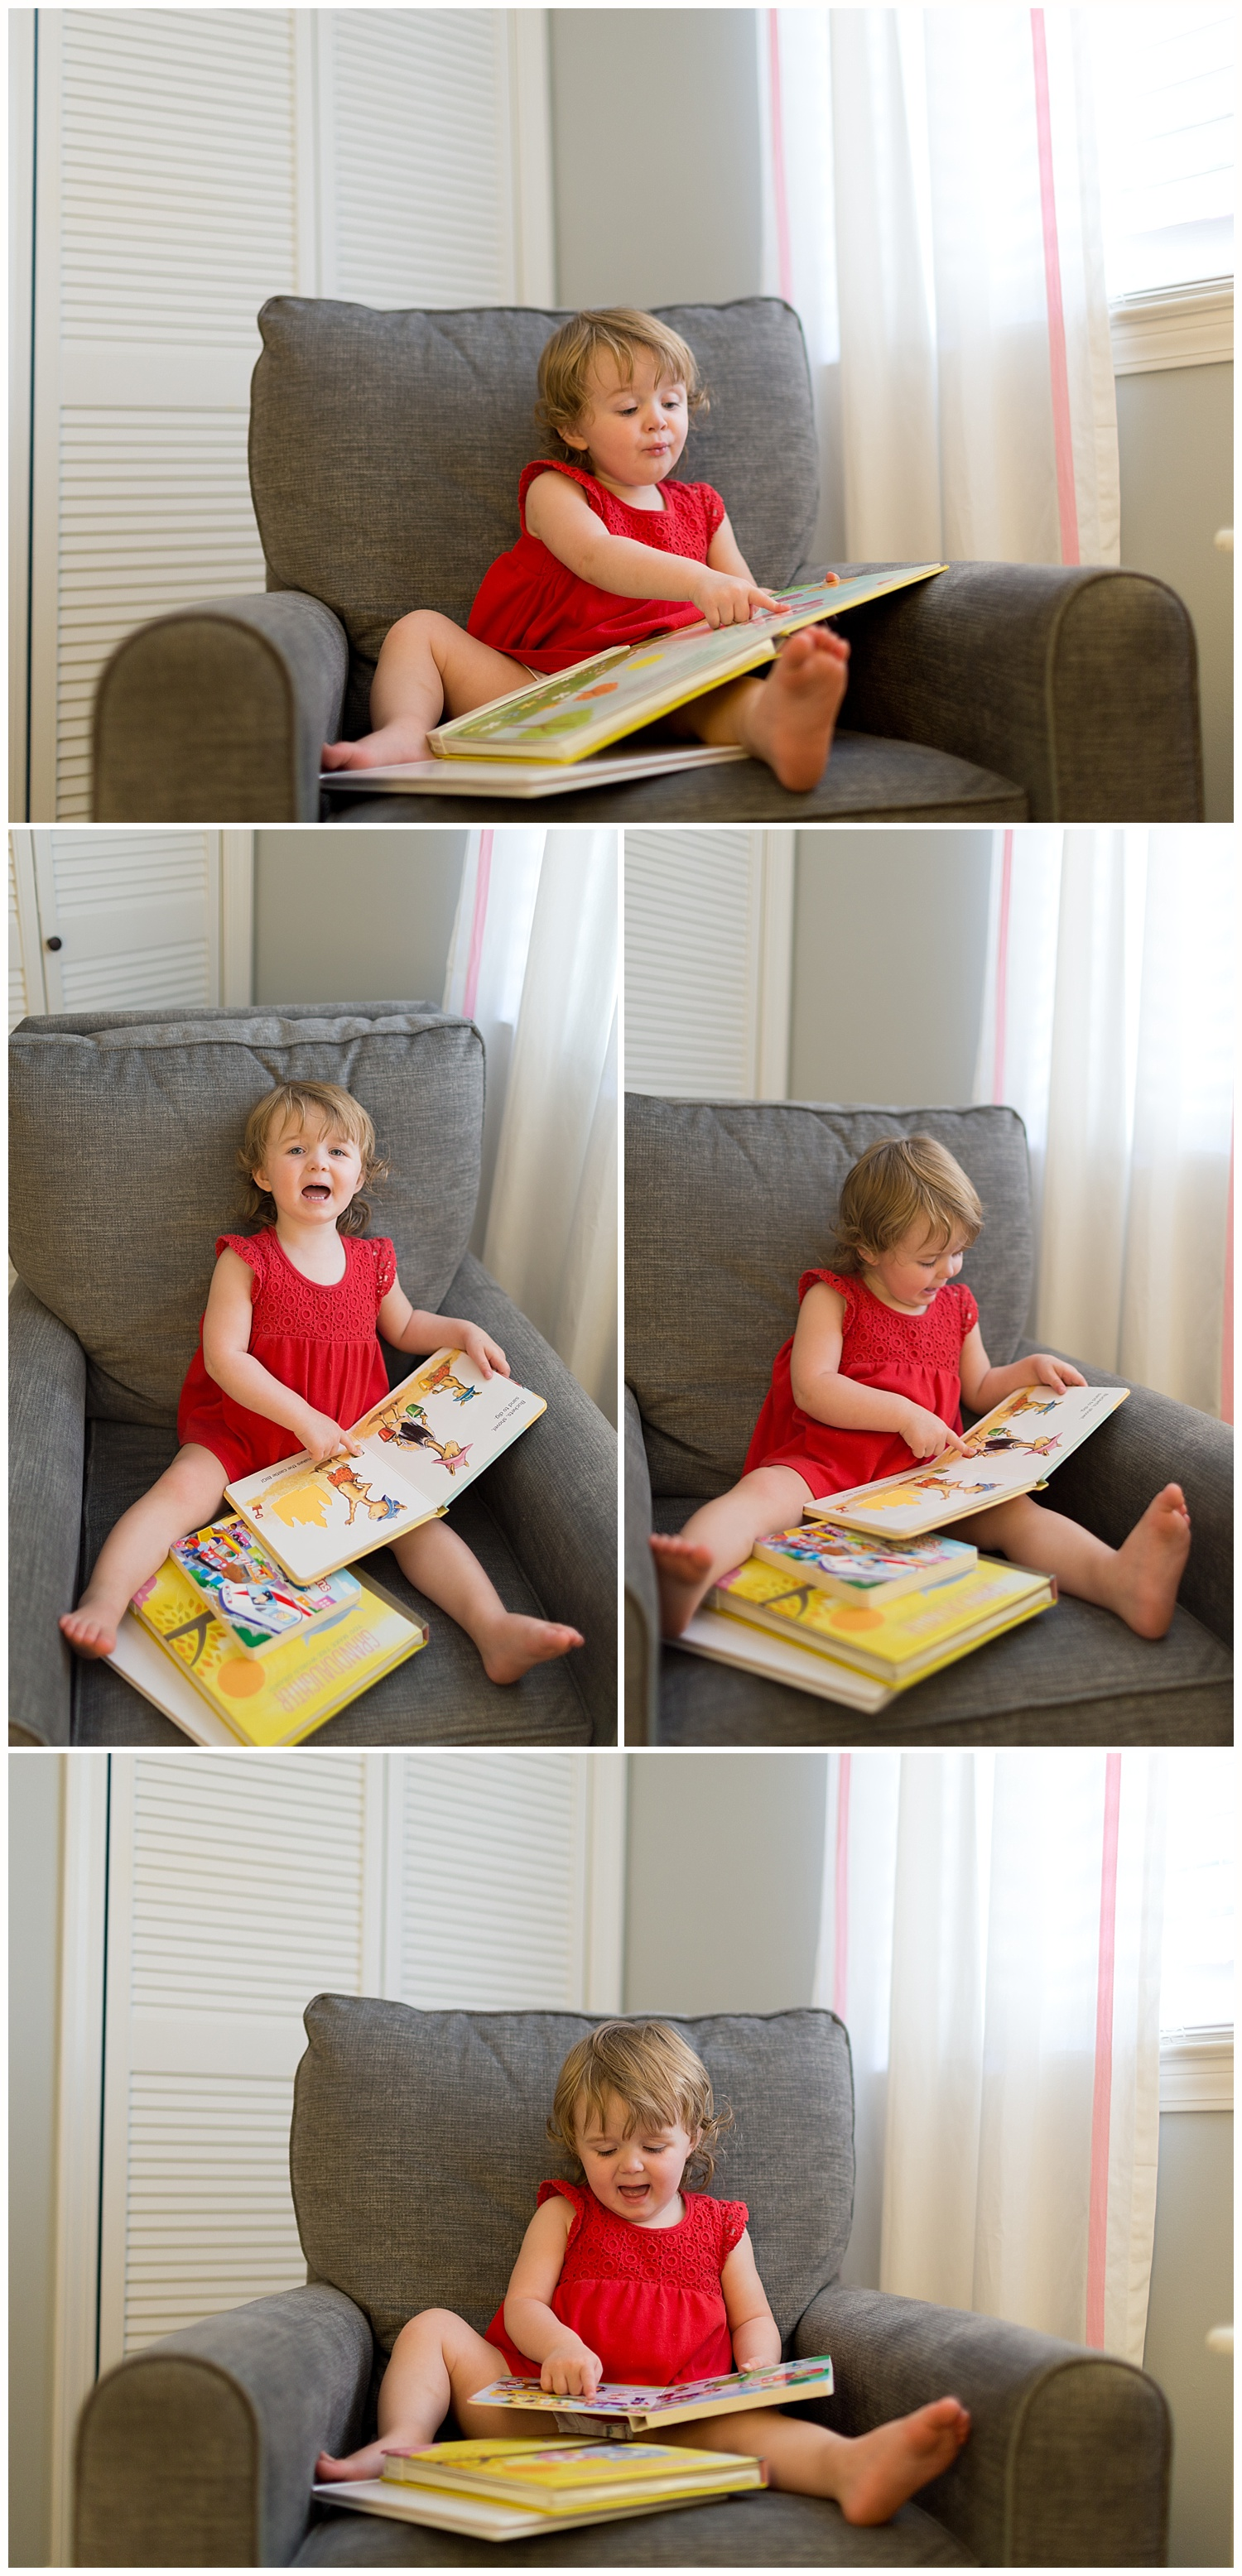 2-year-old girl reading books in bedroom